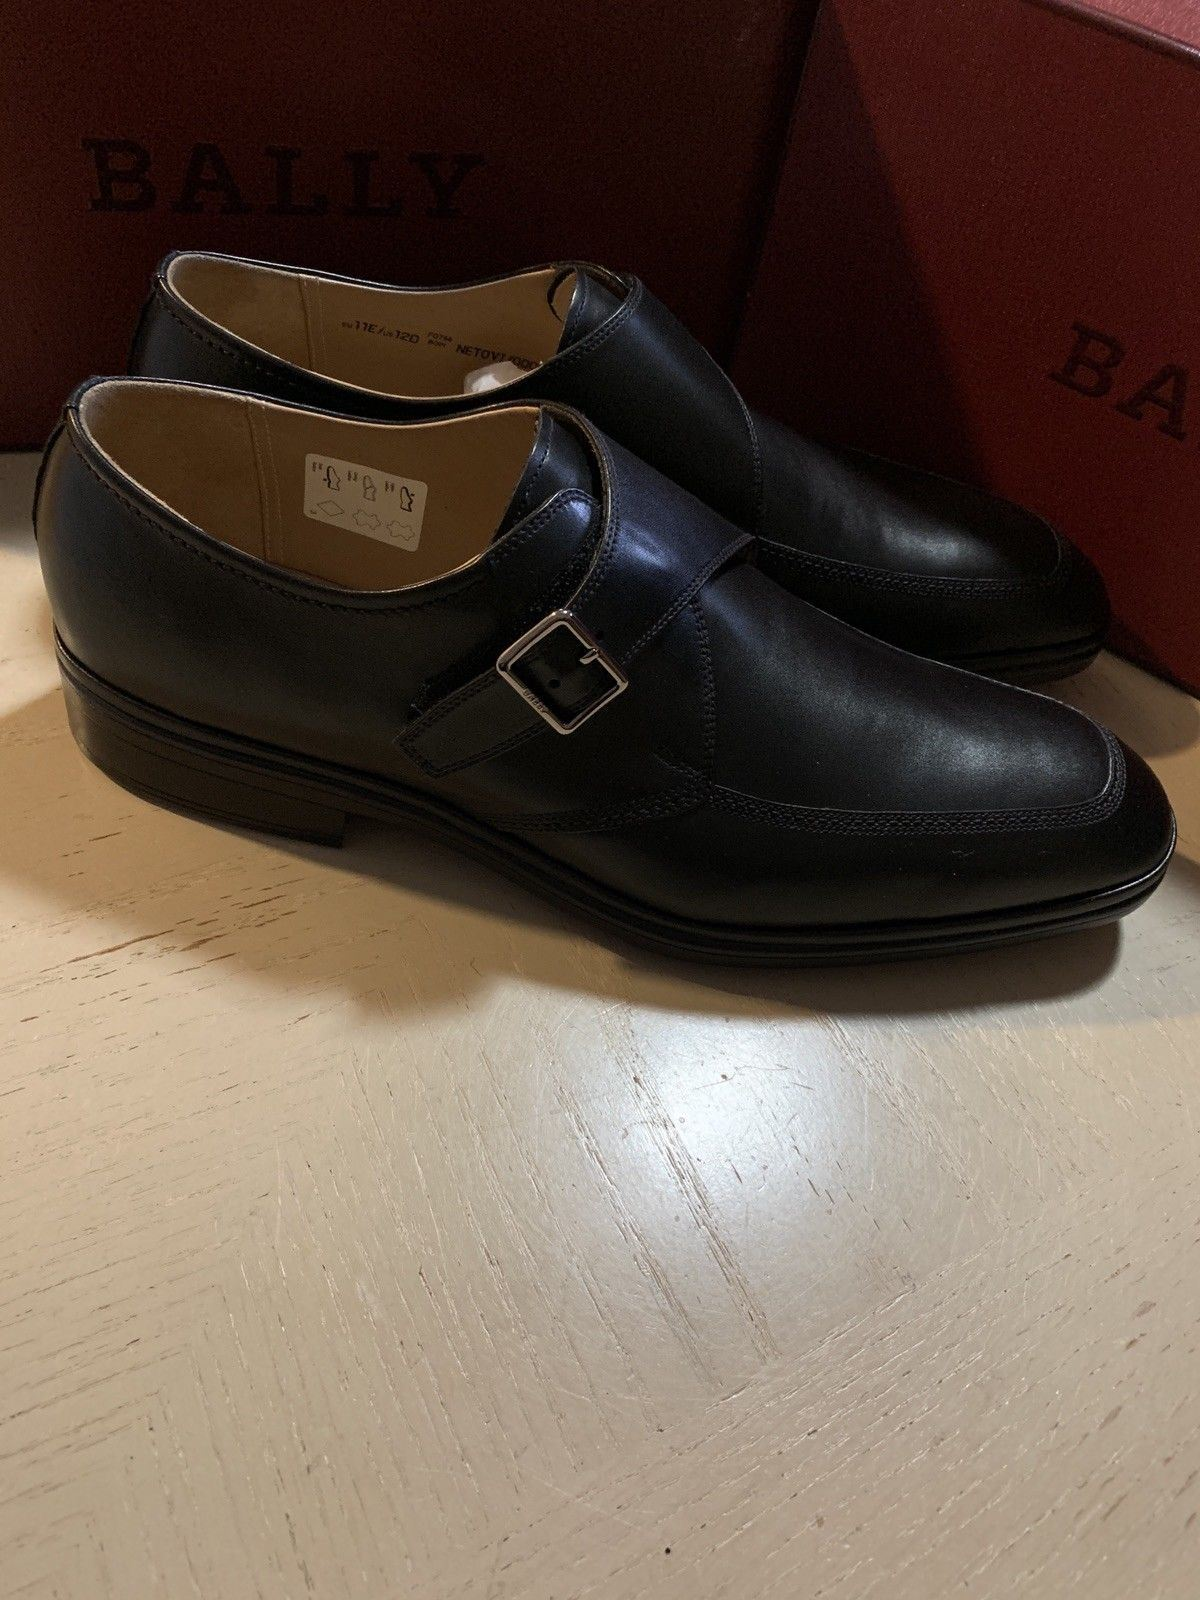 New $495 Bally Men Netovi Leather Very Light Shoes Black 12 US ( 45 Eu )